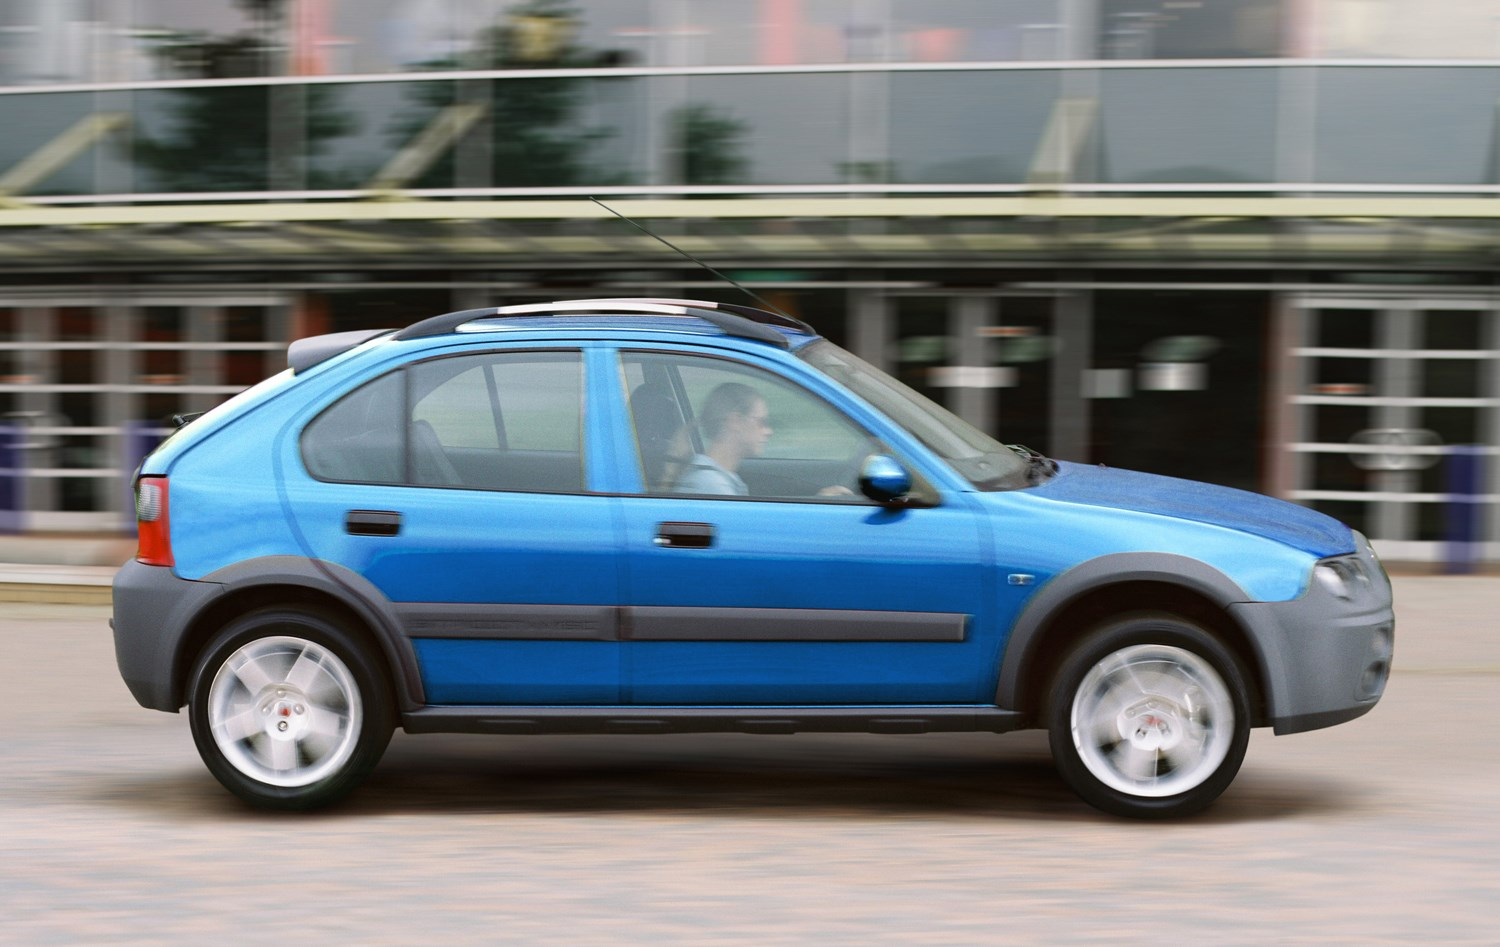 2003 Rover Streetwise #18